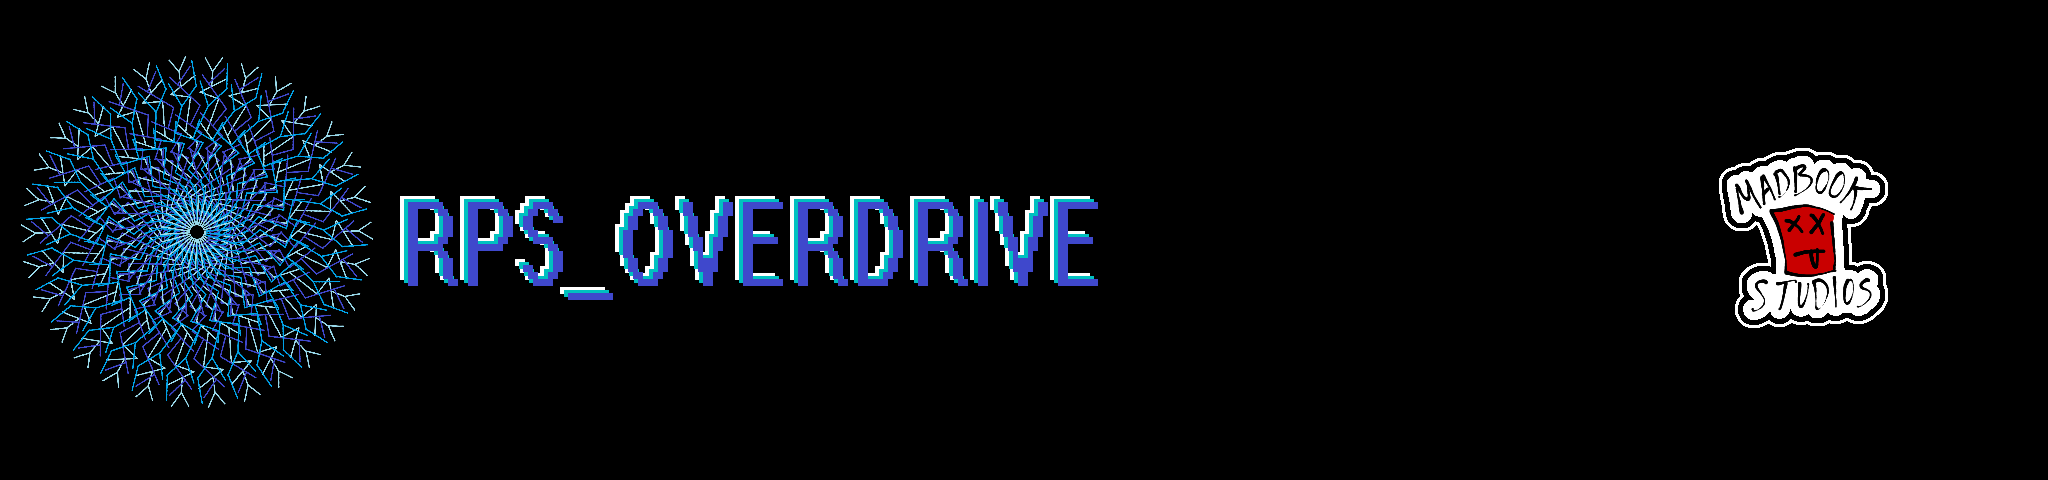 RPS_OVERDRIVE